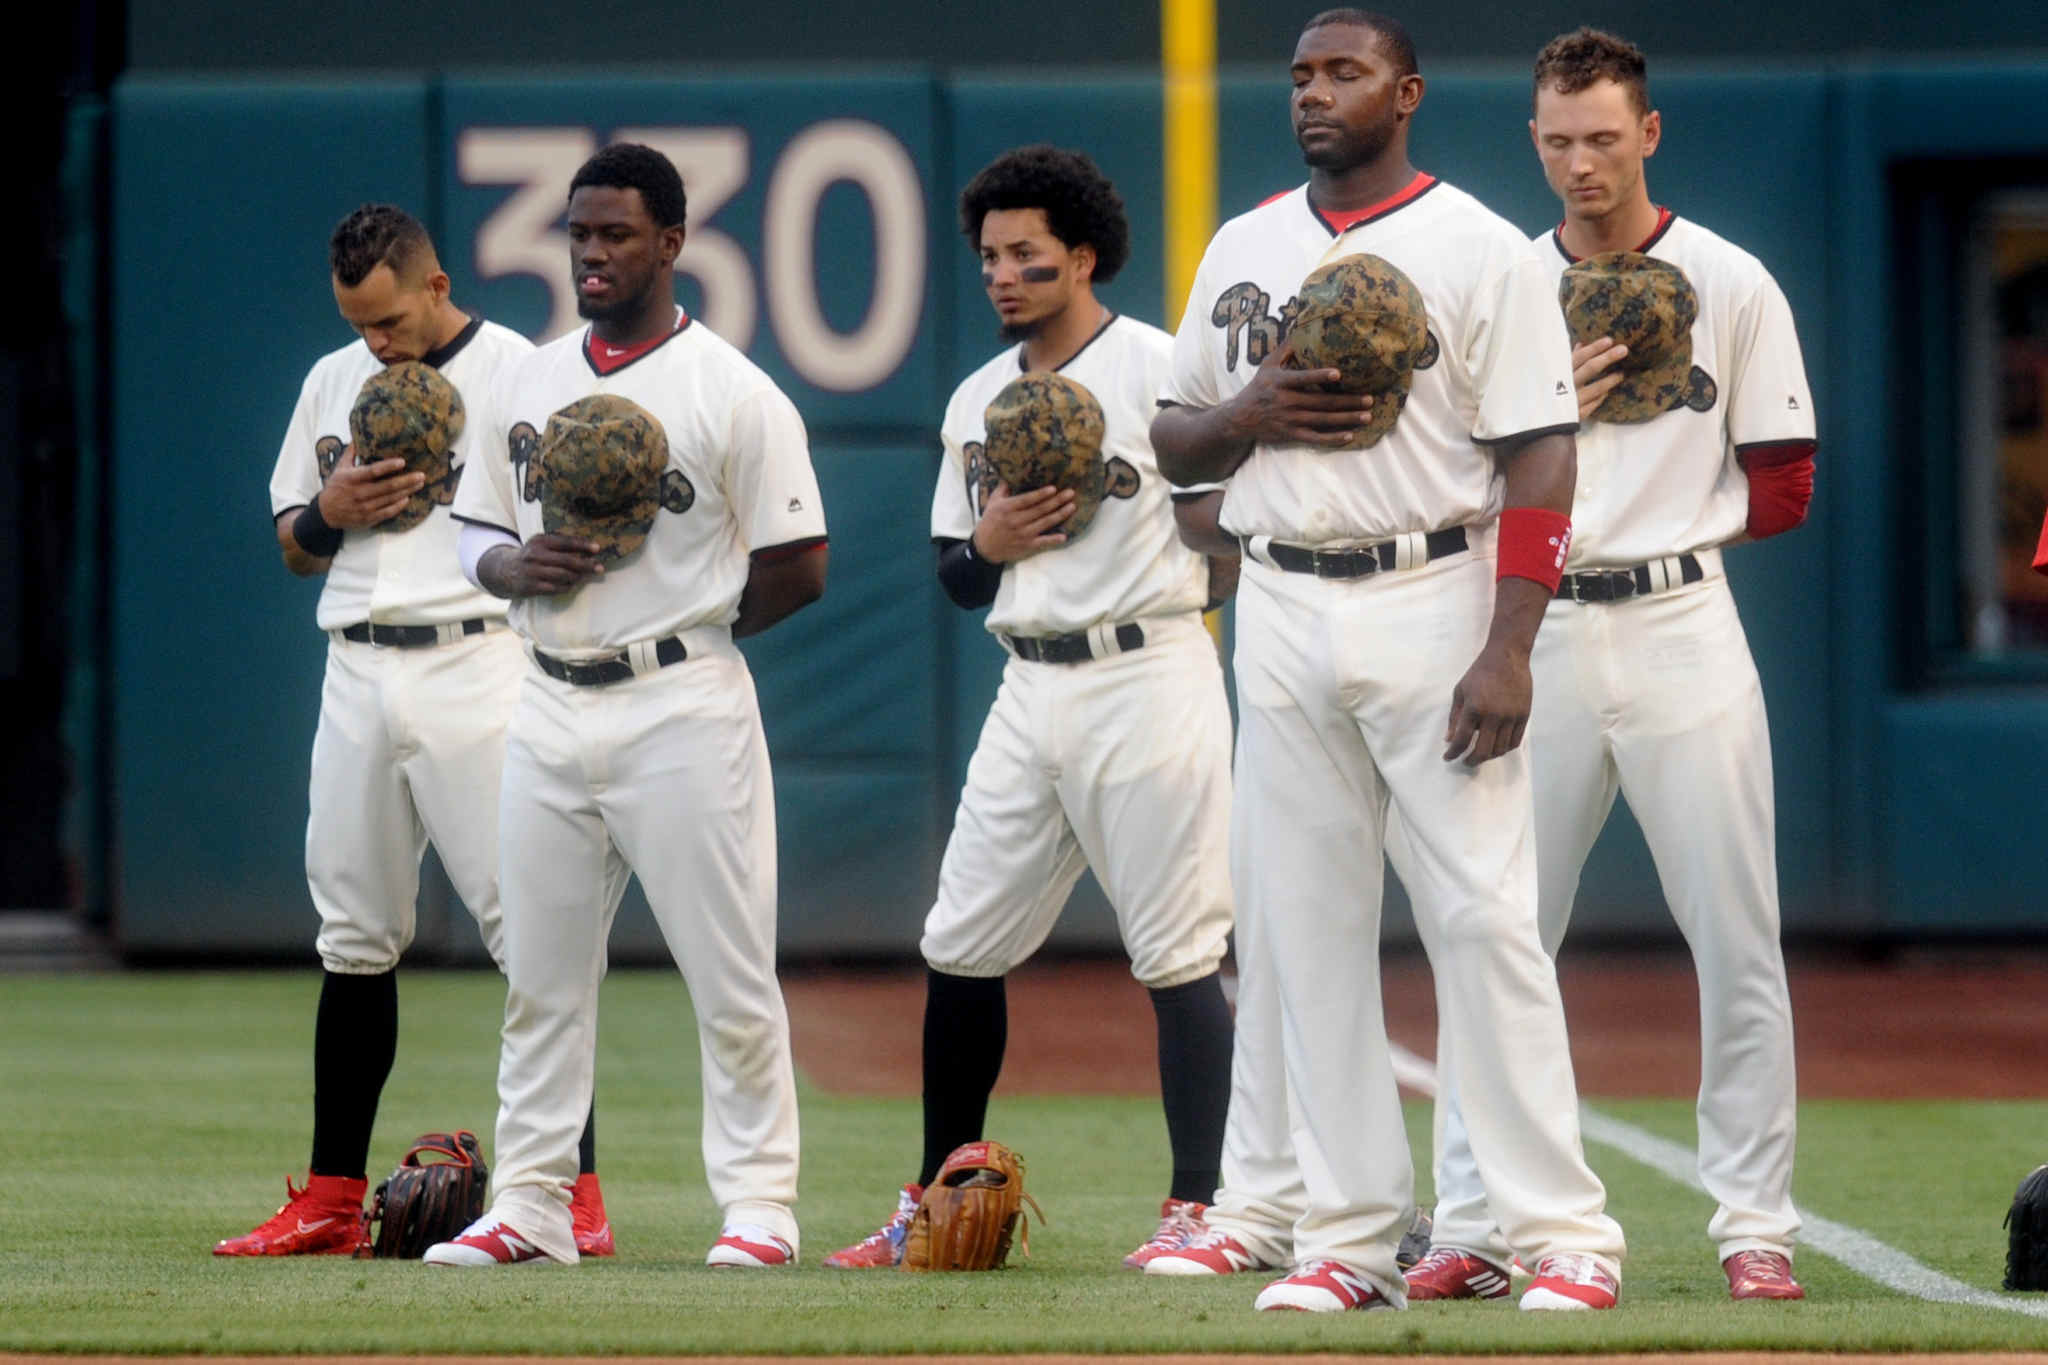 Howard (second from right) stands with teammates for the National Anthem before their game with the Nationals, holding their camouflage-designed caps over their camo jerseys in commemoration of Memorial Day.